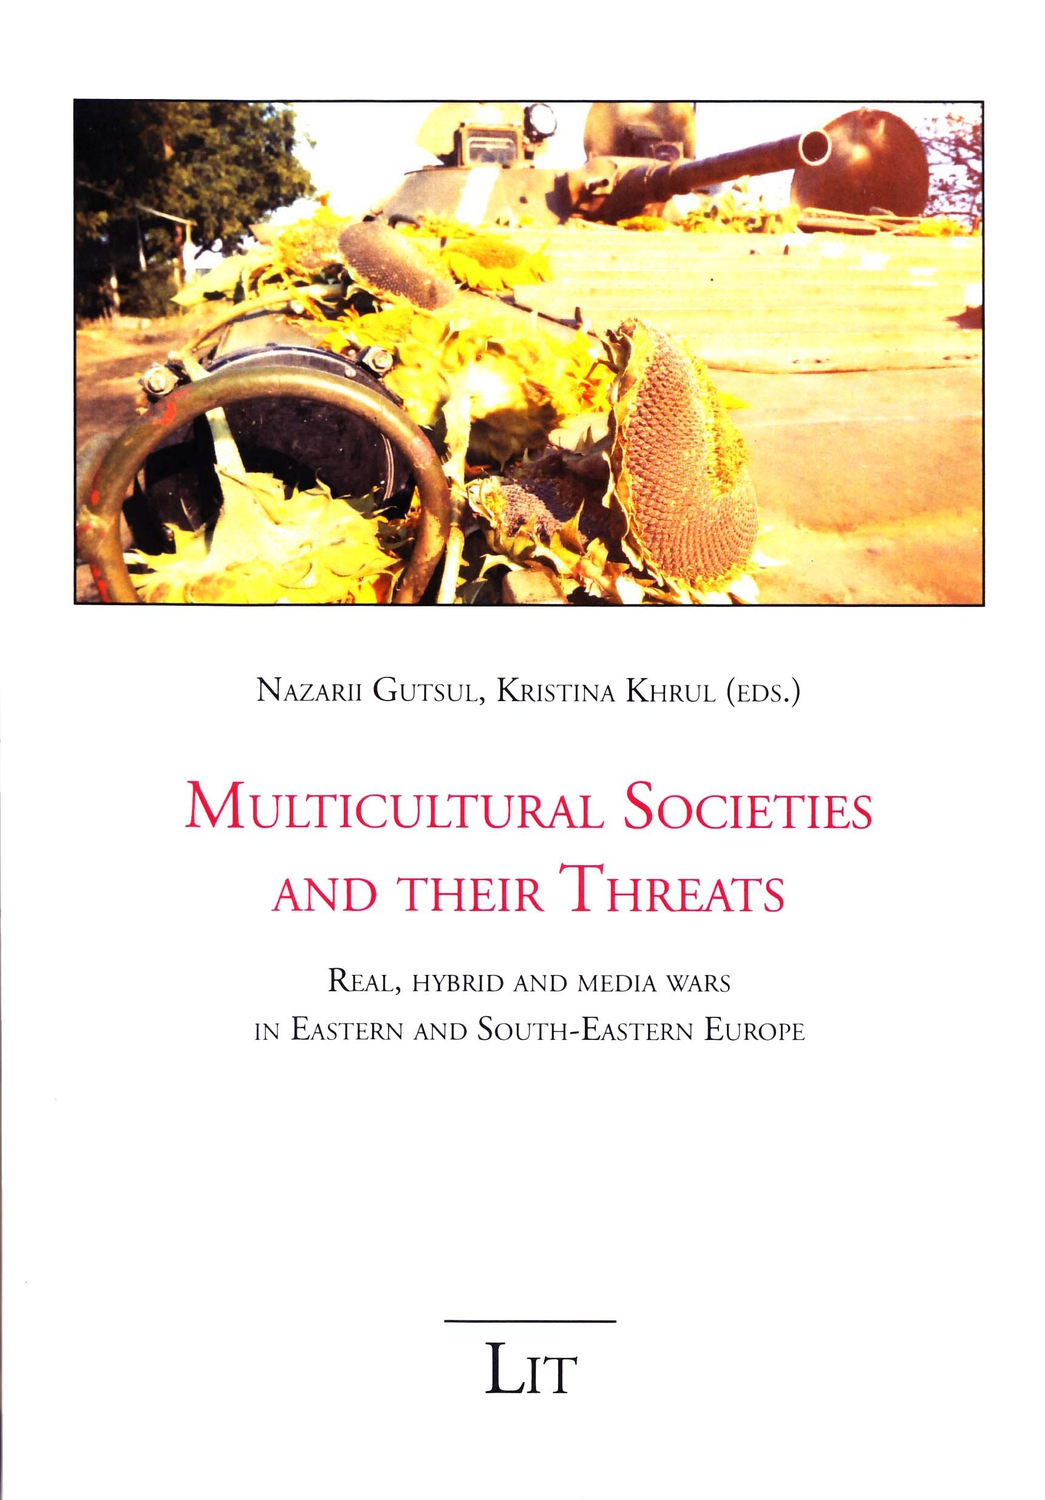 Multicultural Societies and their Threats: Real, hybrid and media wars in Eastern and South-Eastern Europe